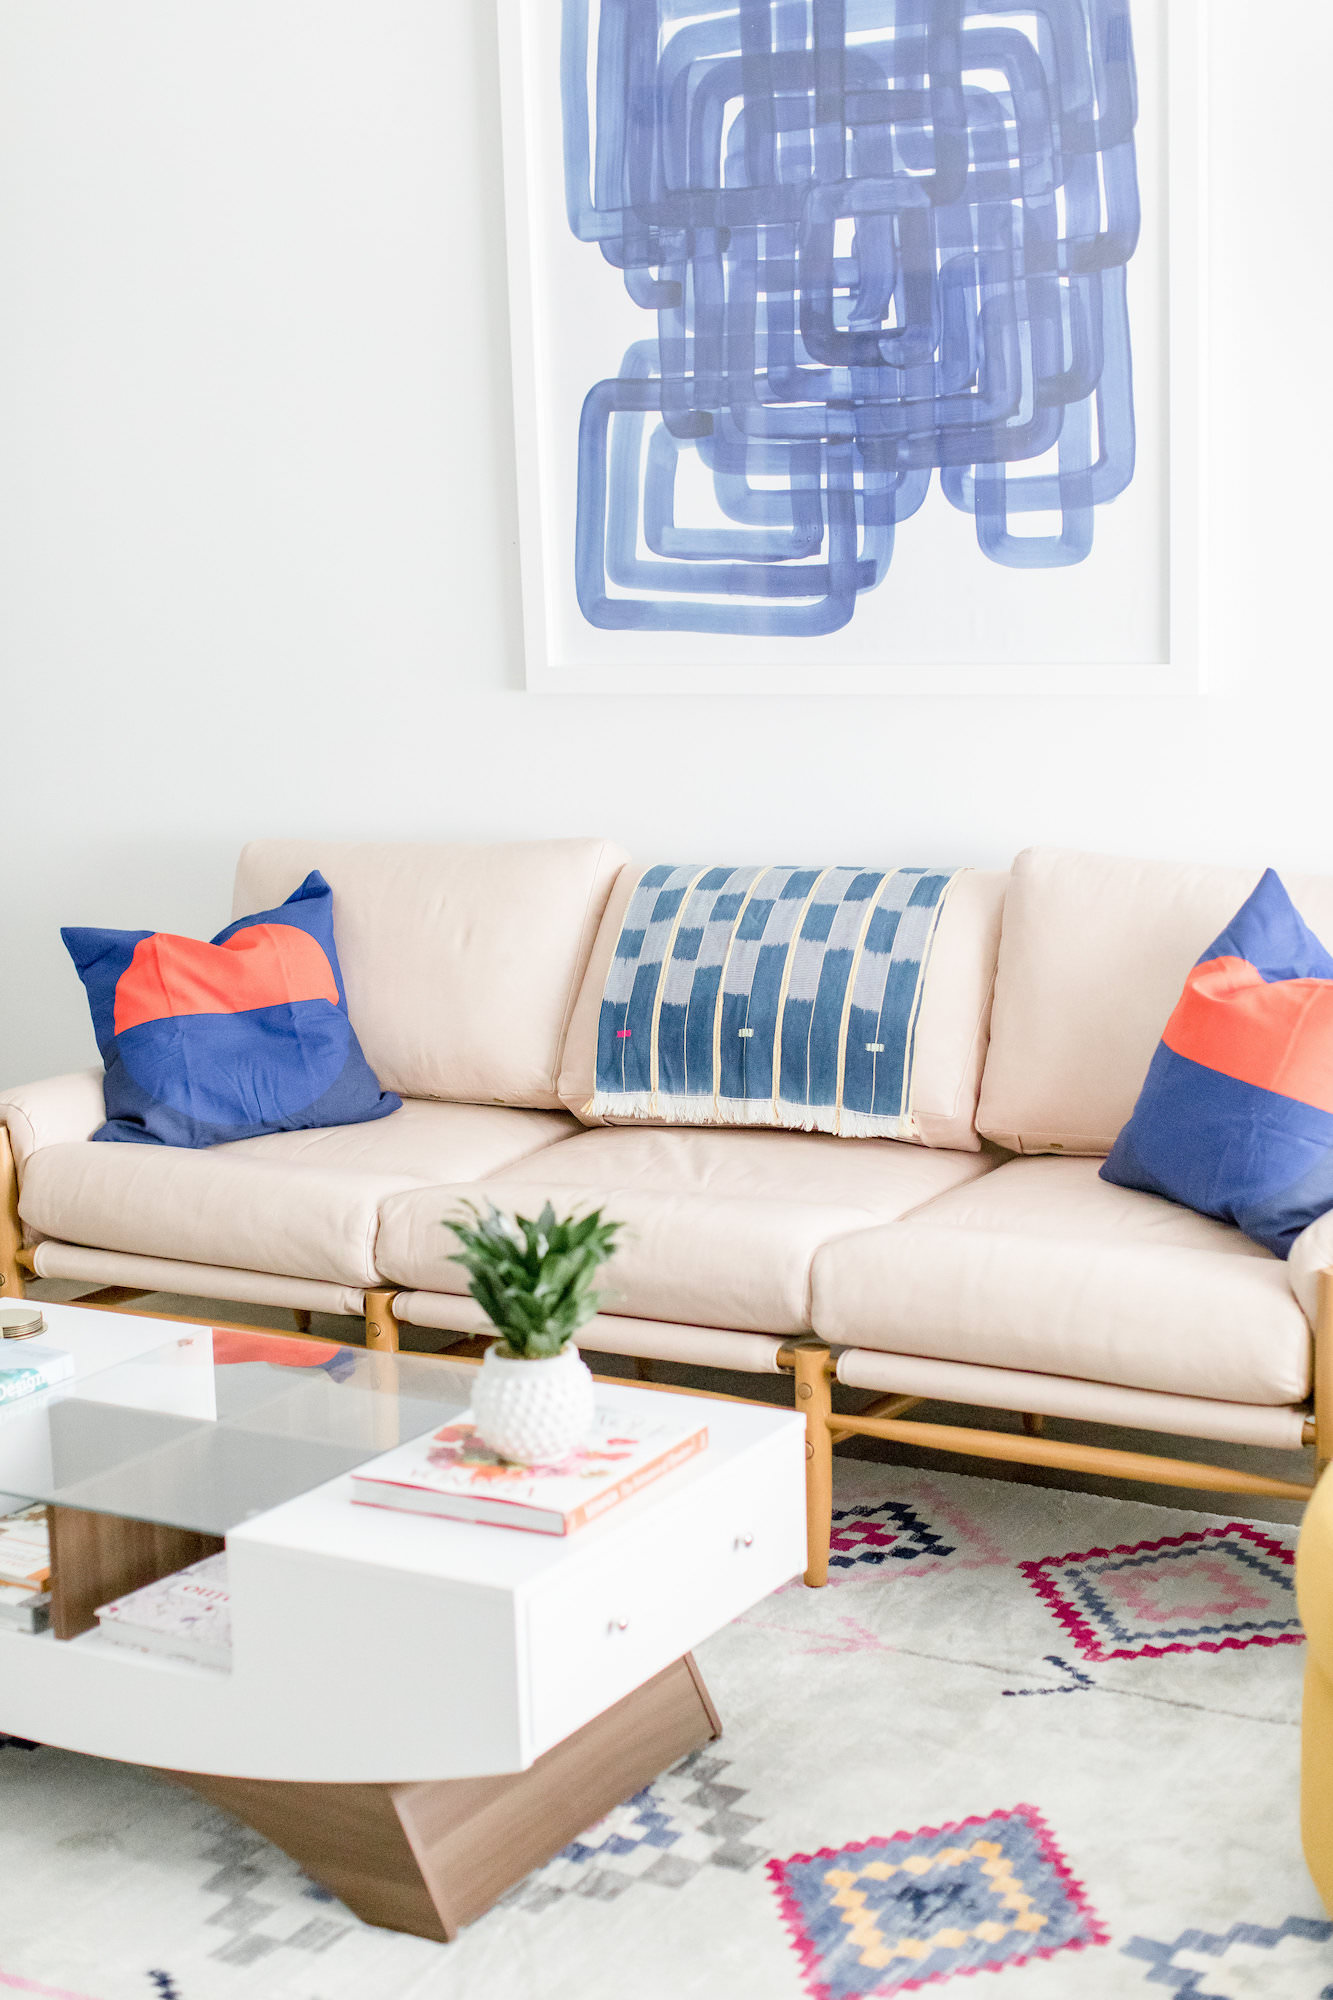 mid-century-modern-vacation-rental-the-park-leather-couch-modern-art-web-res.jpg